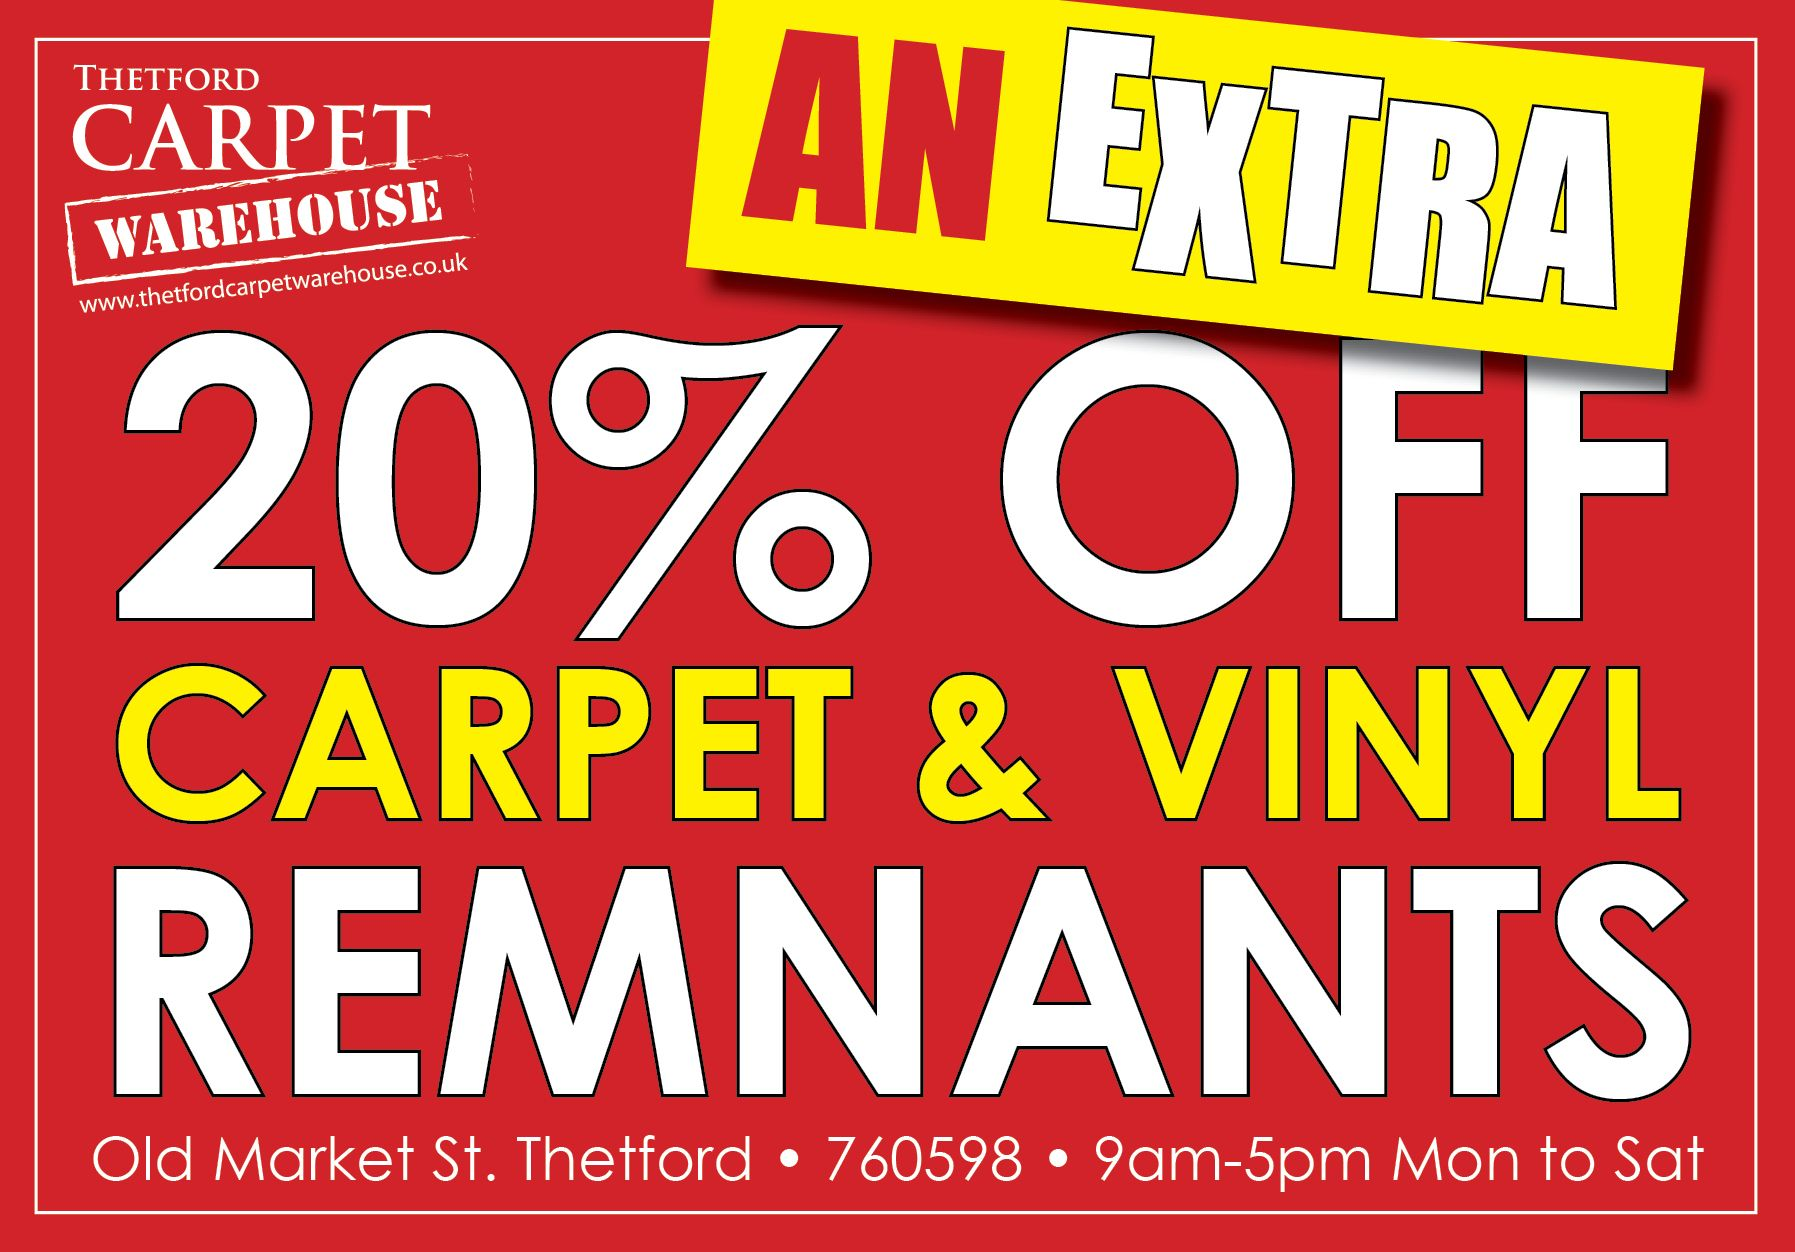 Our Biggest Stock Clearance Carpet Furniture Sale At Thetfordcarpetwarehouse An Extra 20 Of Carpet Warehouse Carpet Sale Carpet